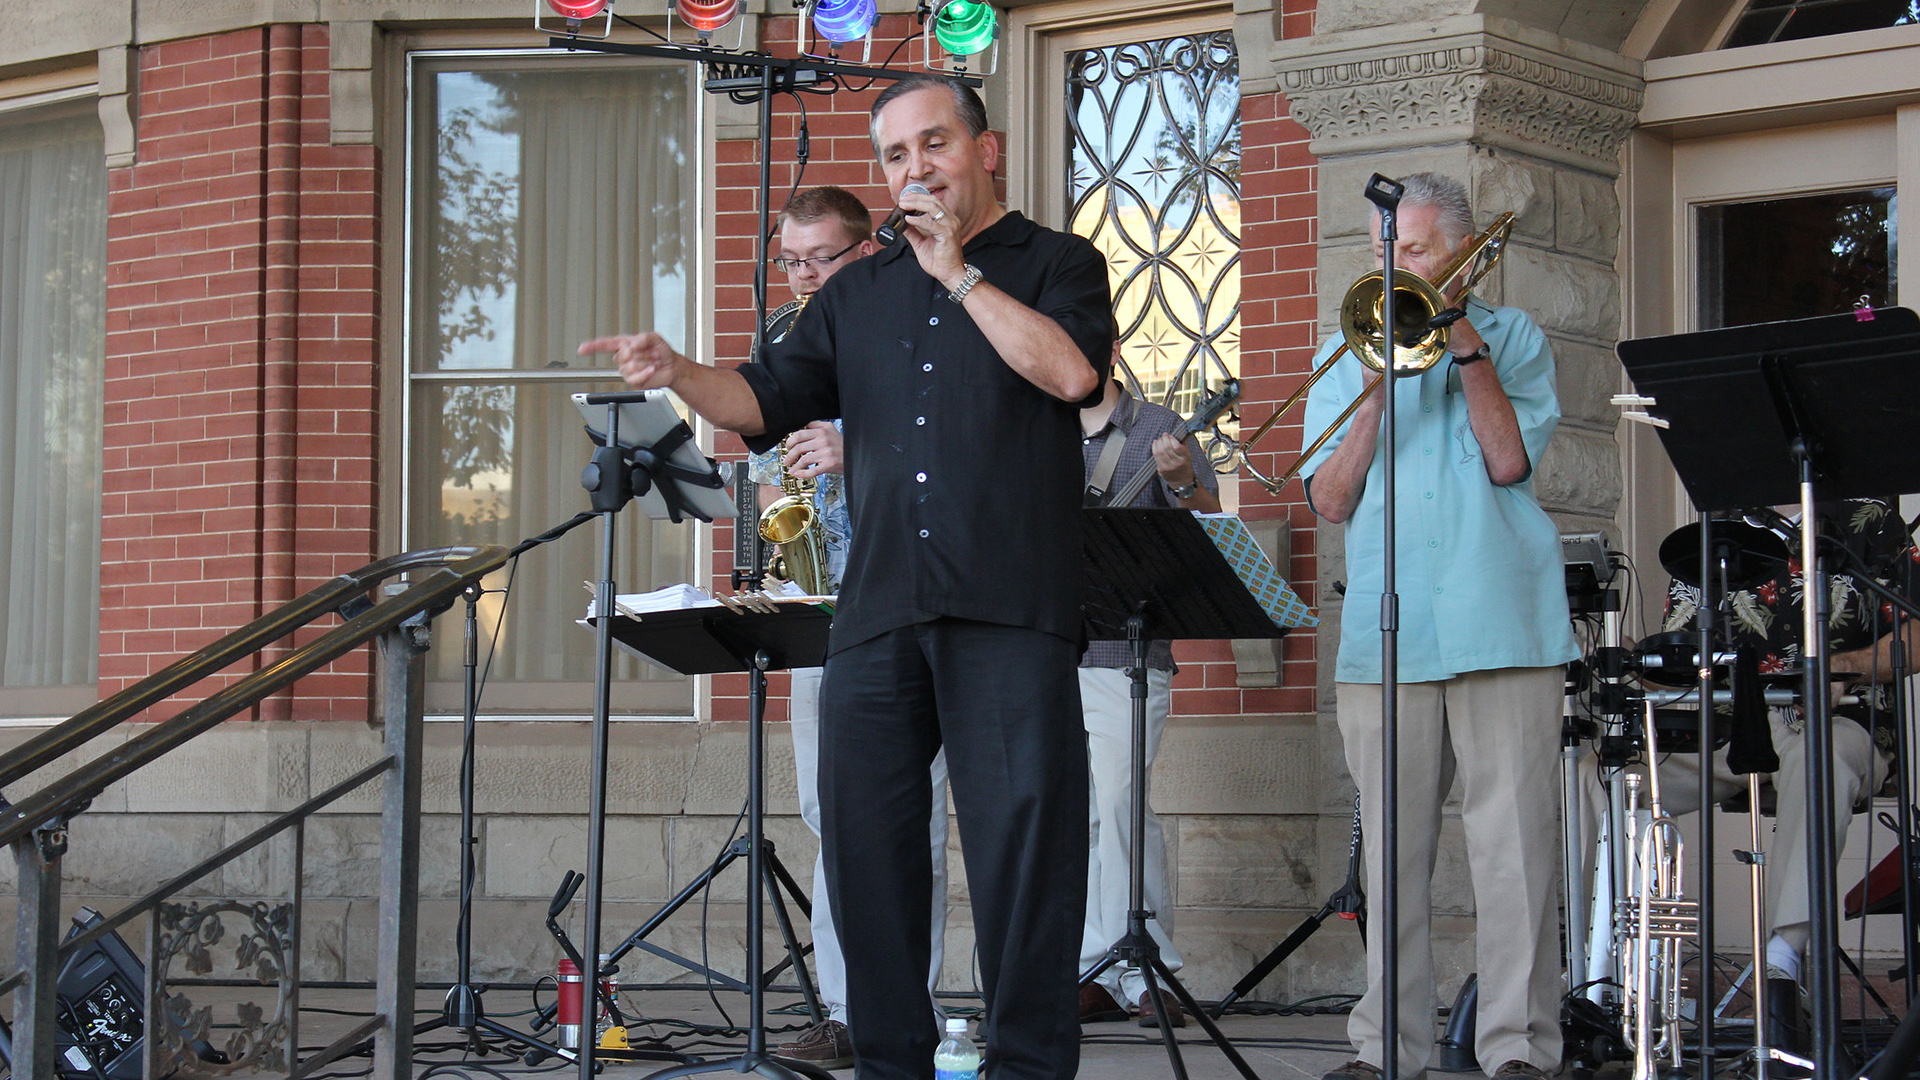 October's chill will be warmed by jazz and folk concert series